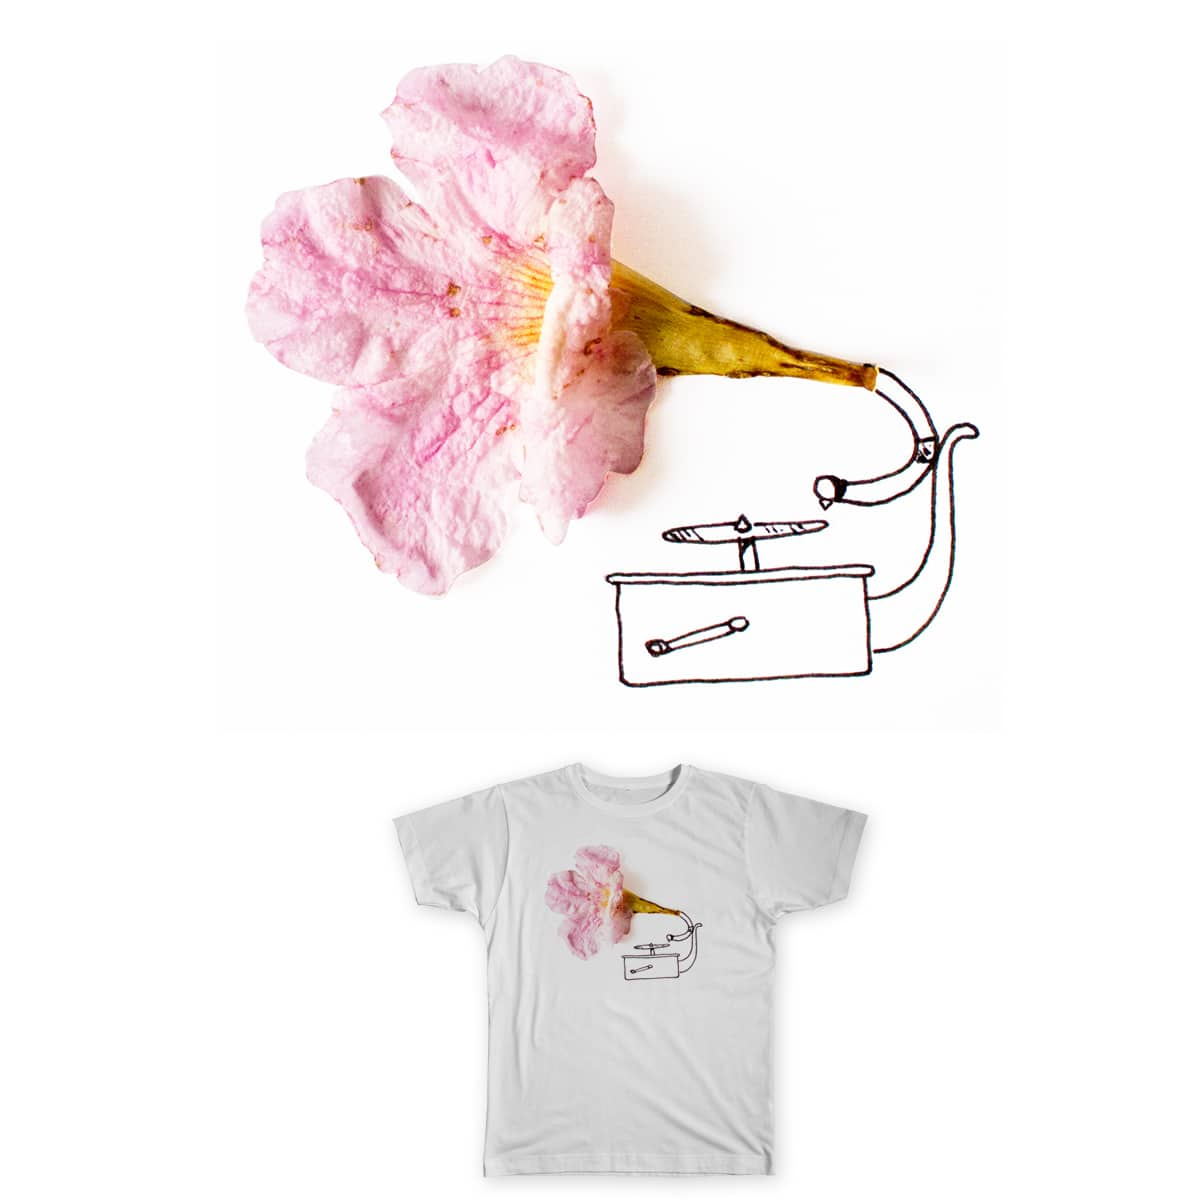 Victroflower by cintascotch on Threadless